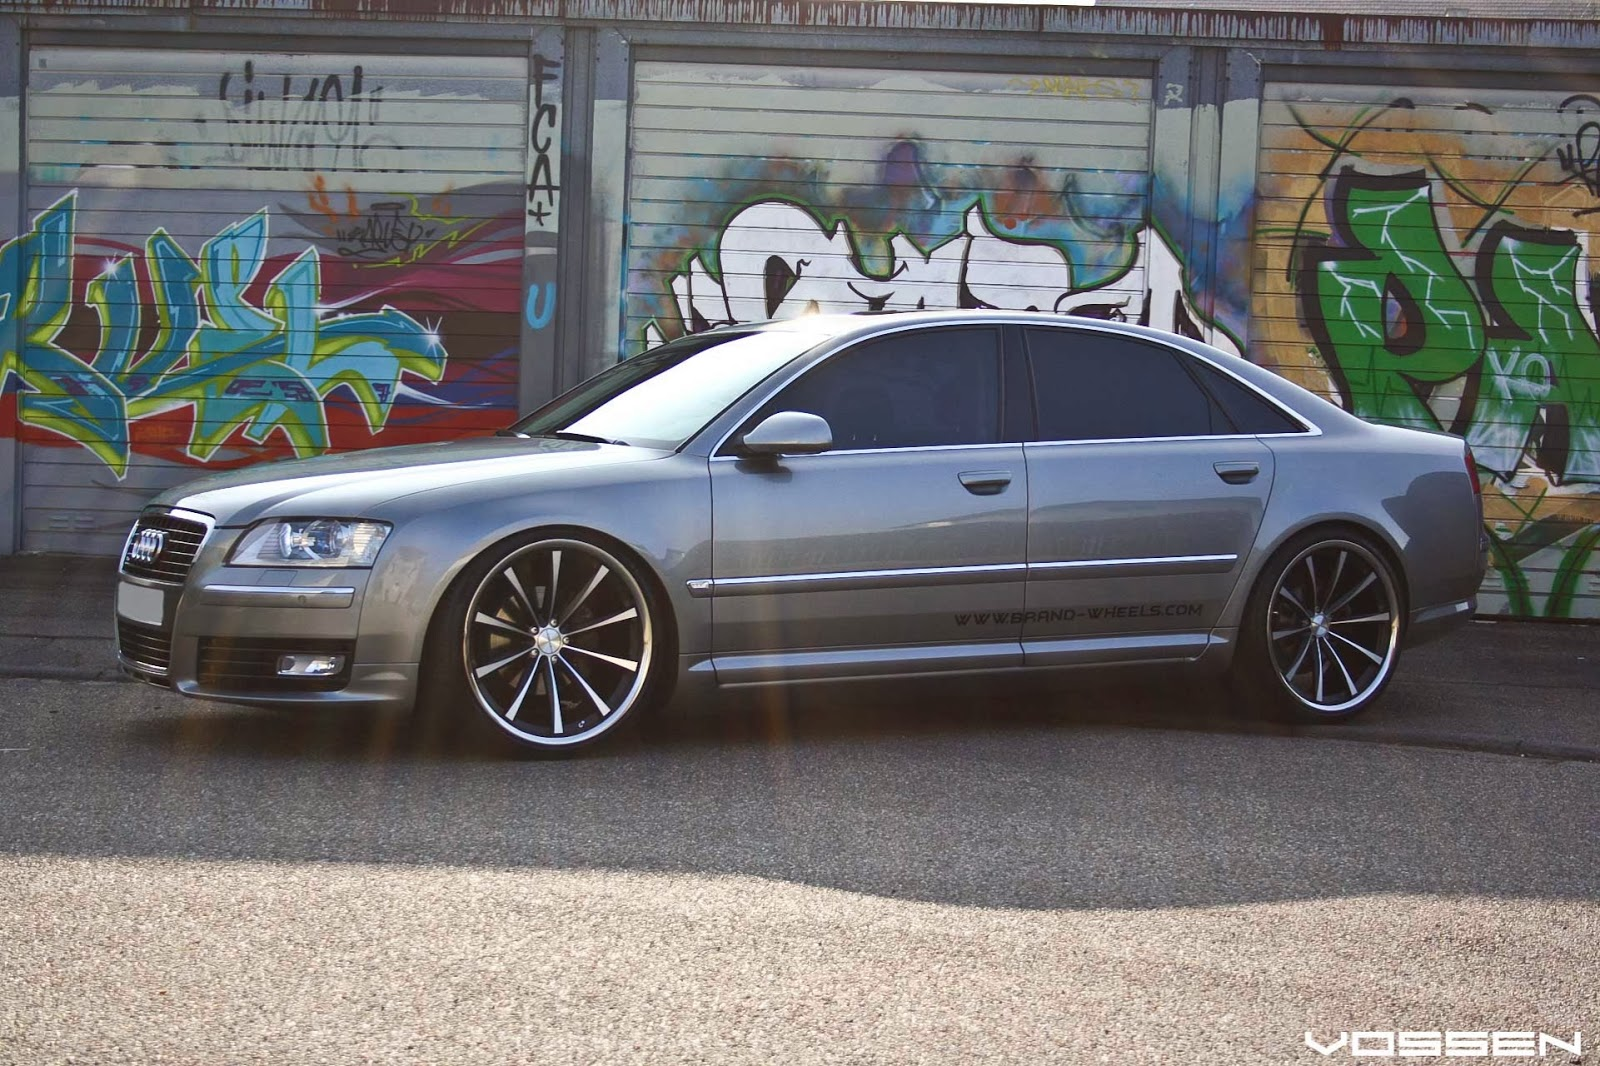 Car Wallpapers And Videos Audi A8 Tuning Wallpapers